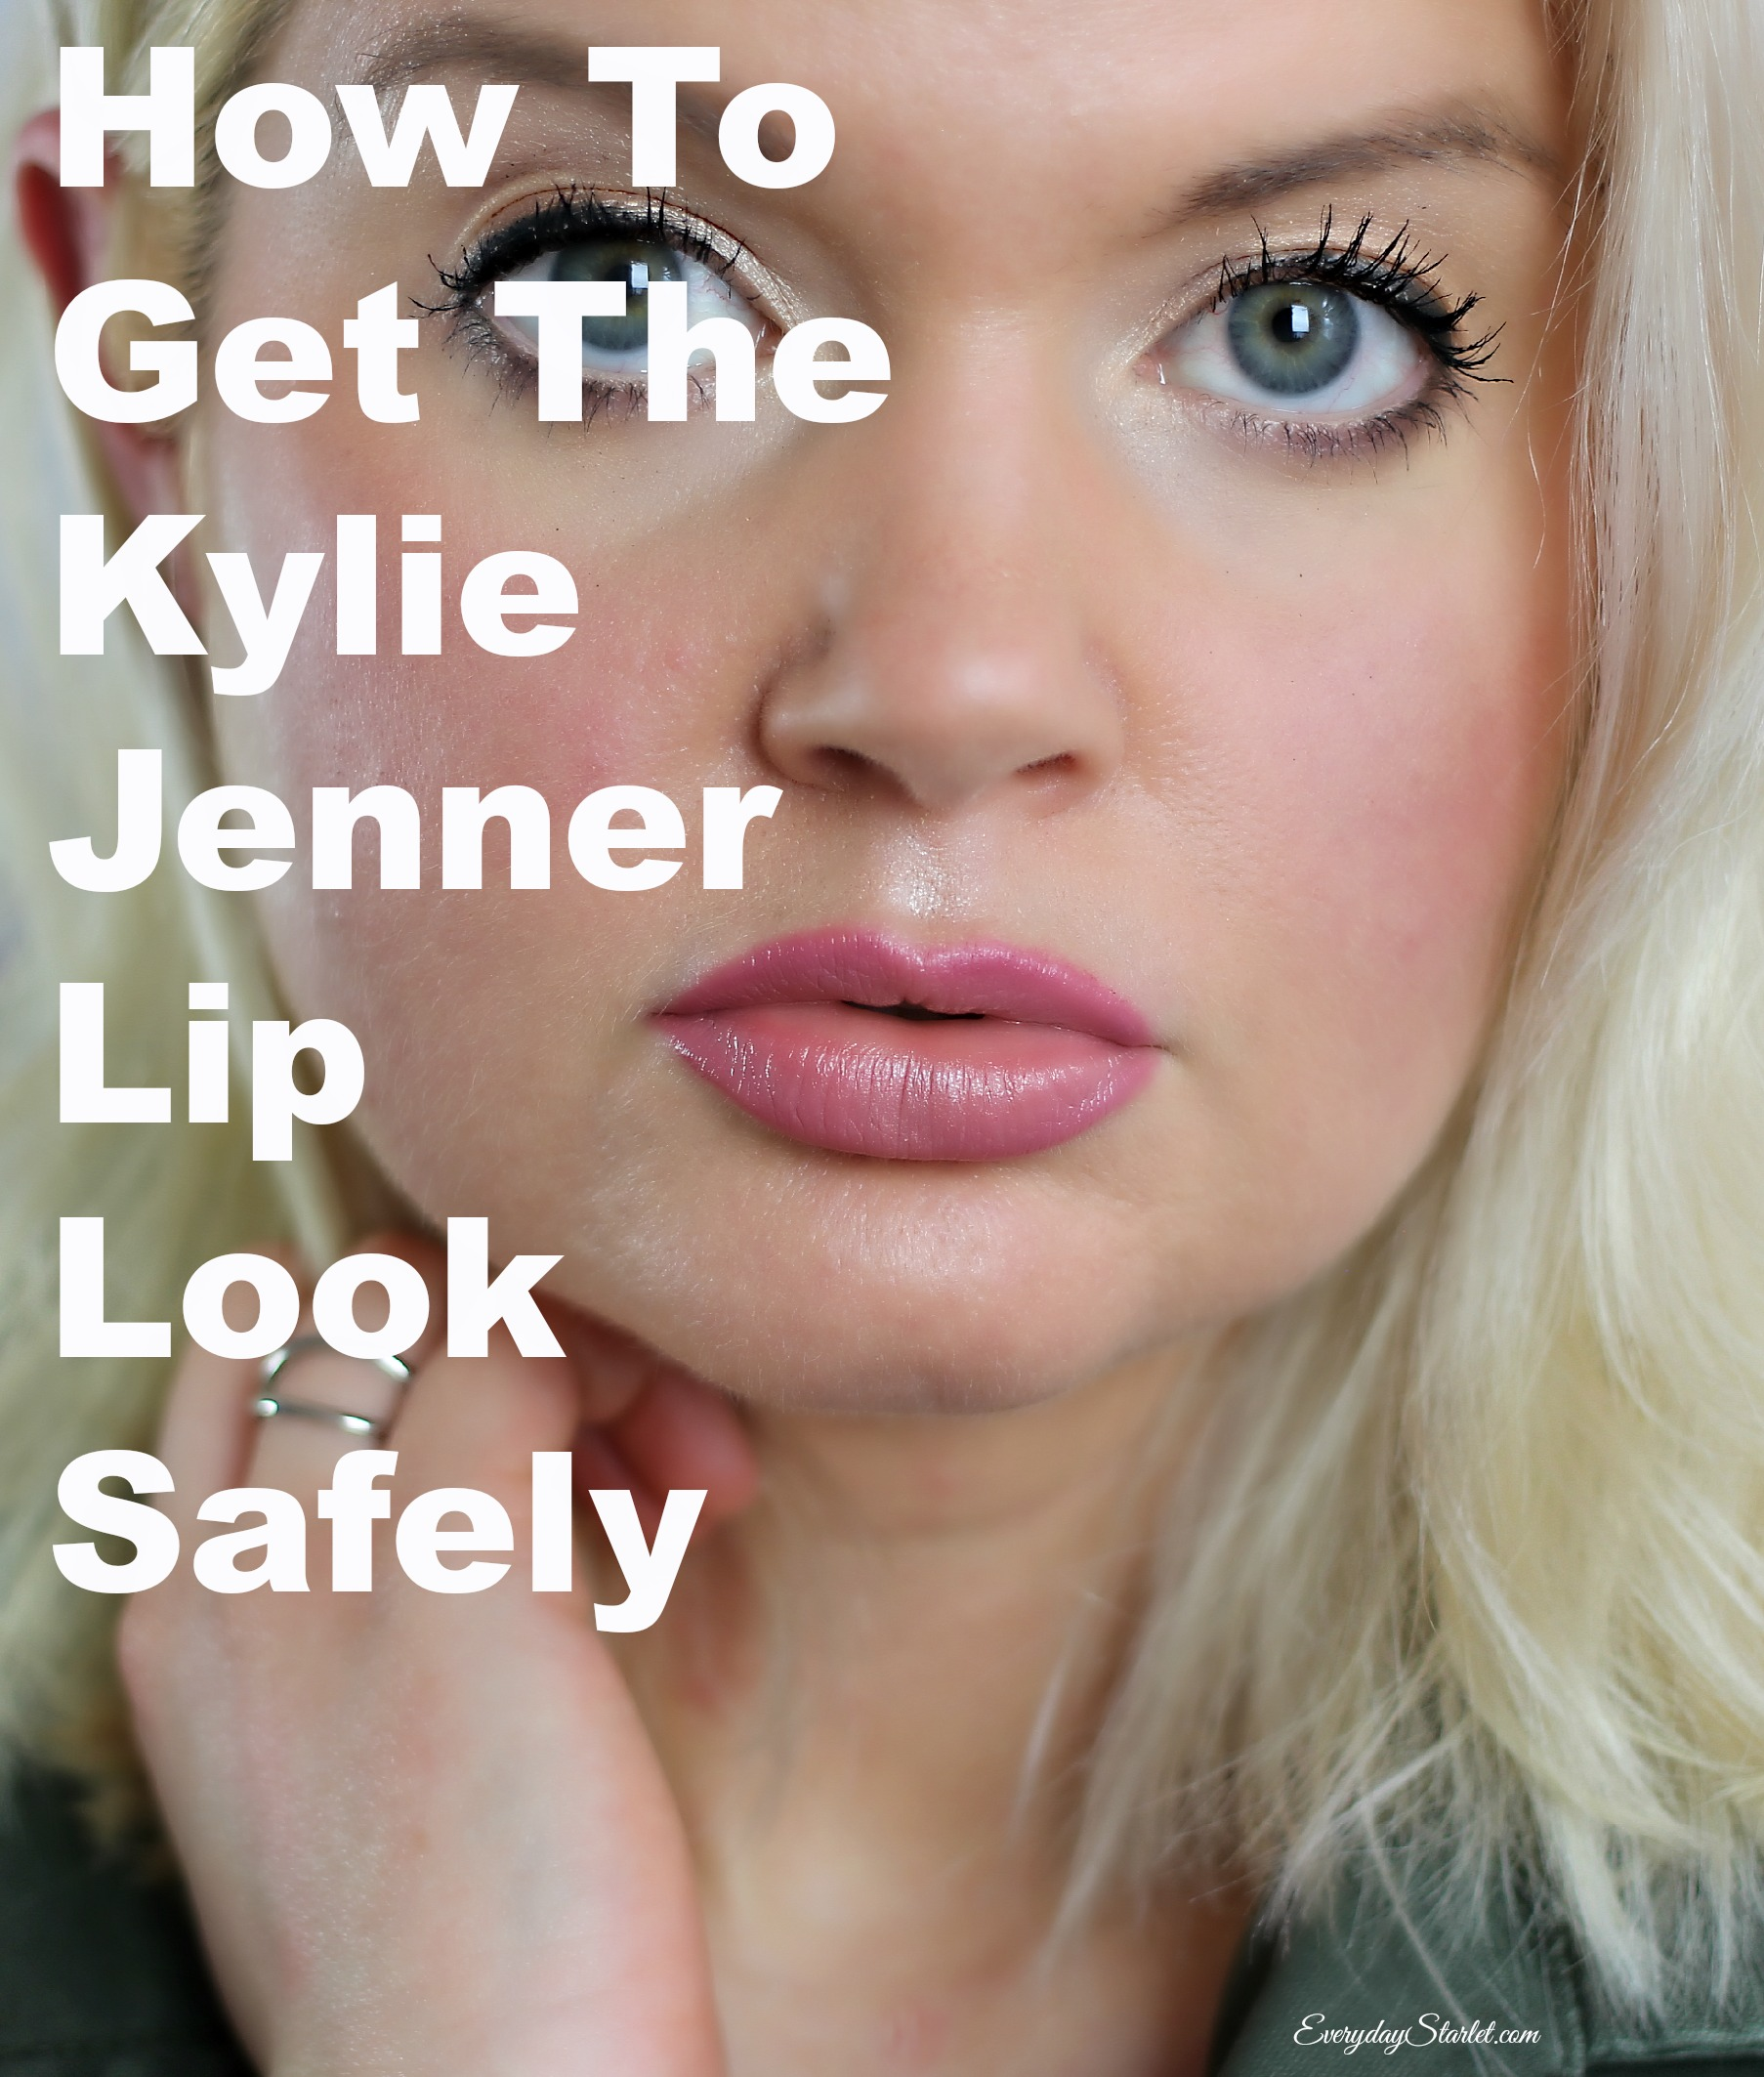 How To Get Kylie Jenner Fuller Sexy Lips Safely